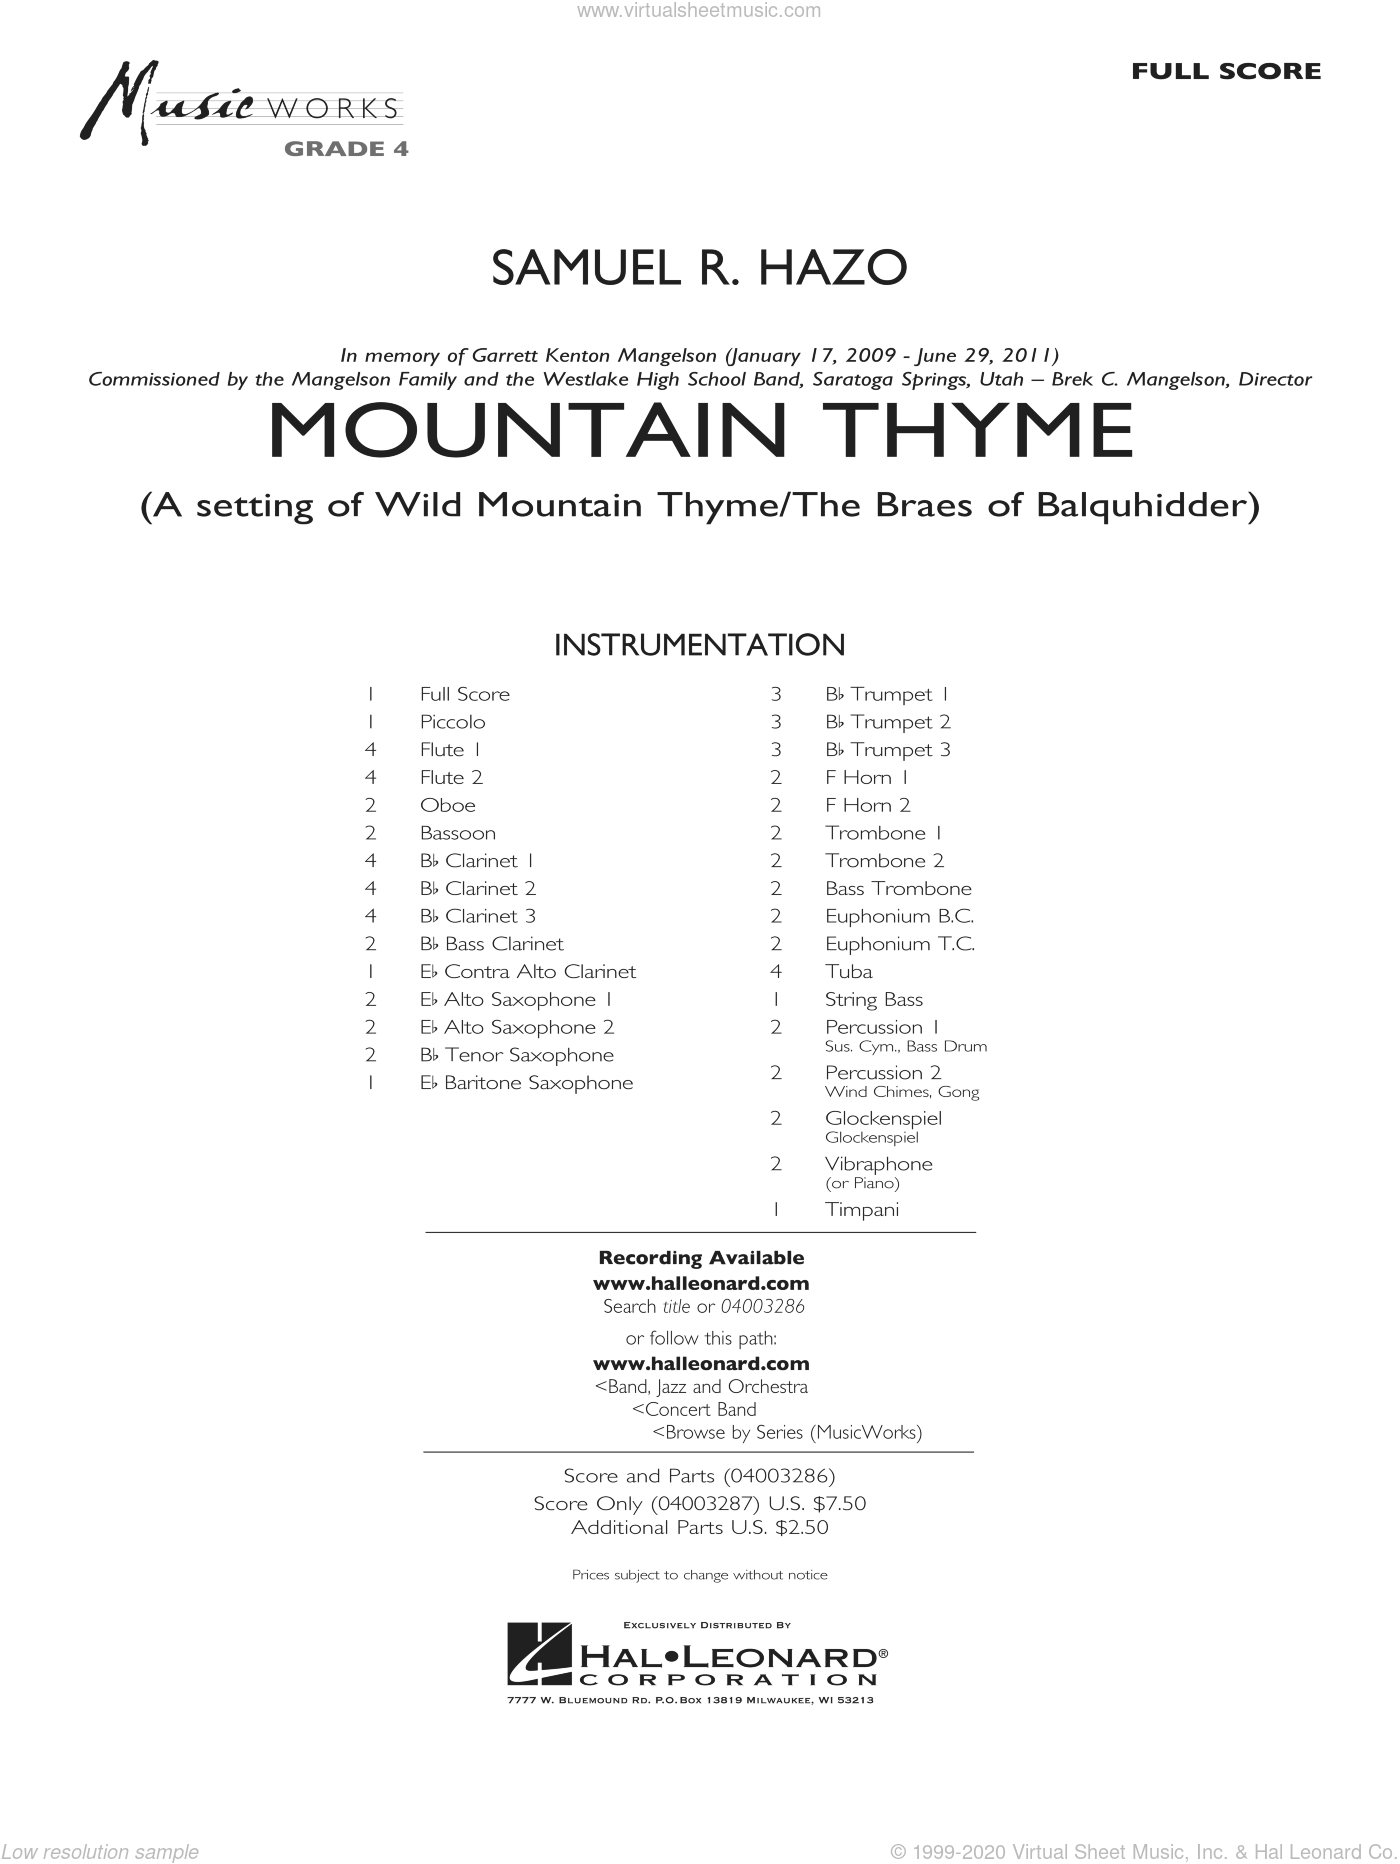 Mountain Thyme sheet music for concert band (full score) by Samuel R. Hazo